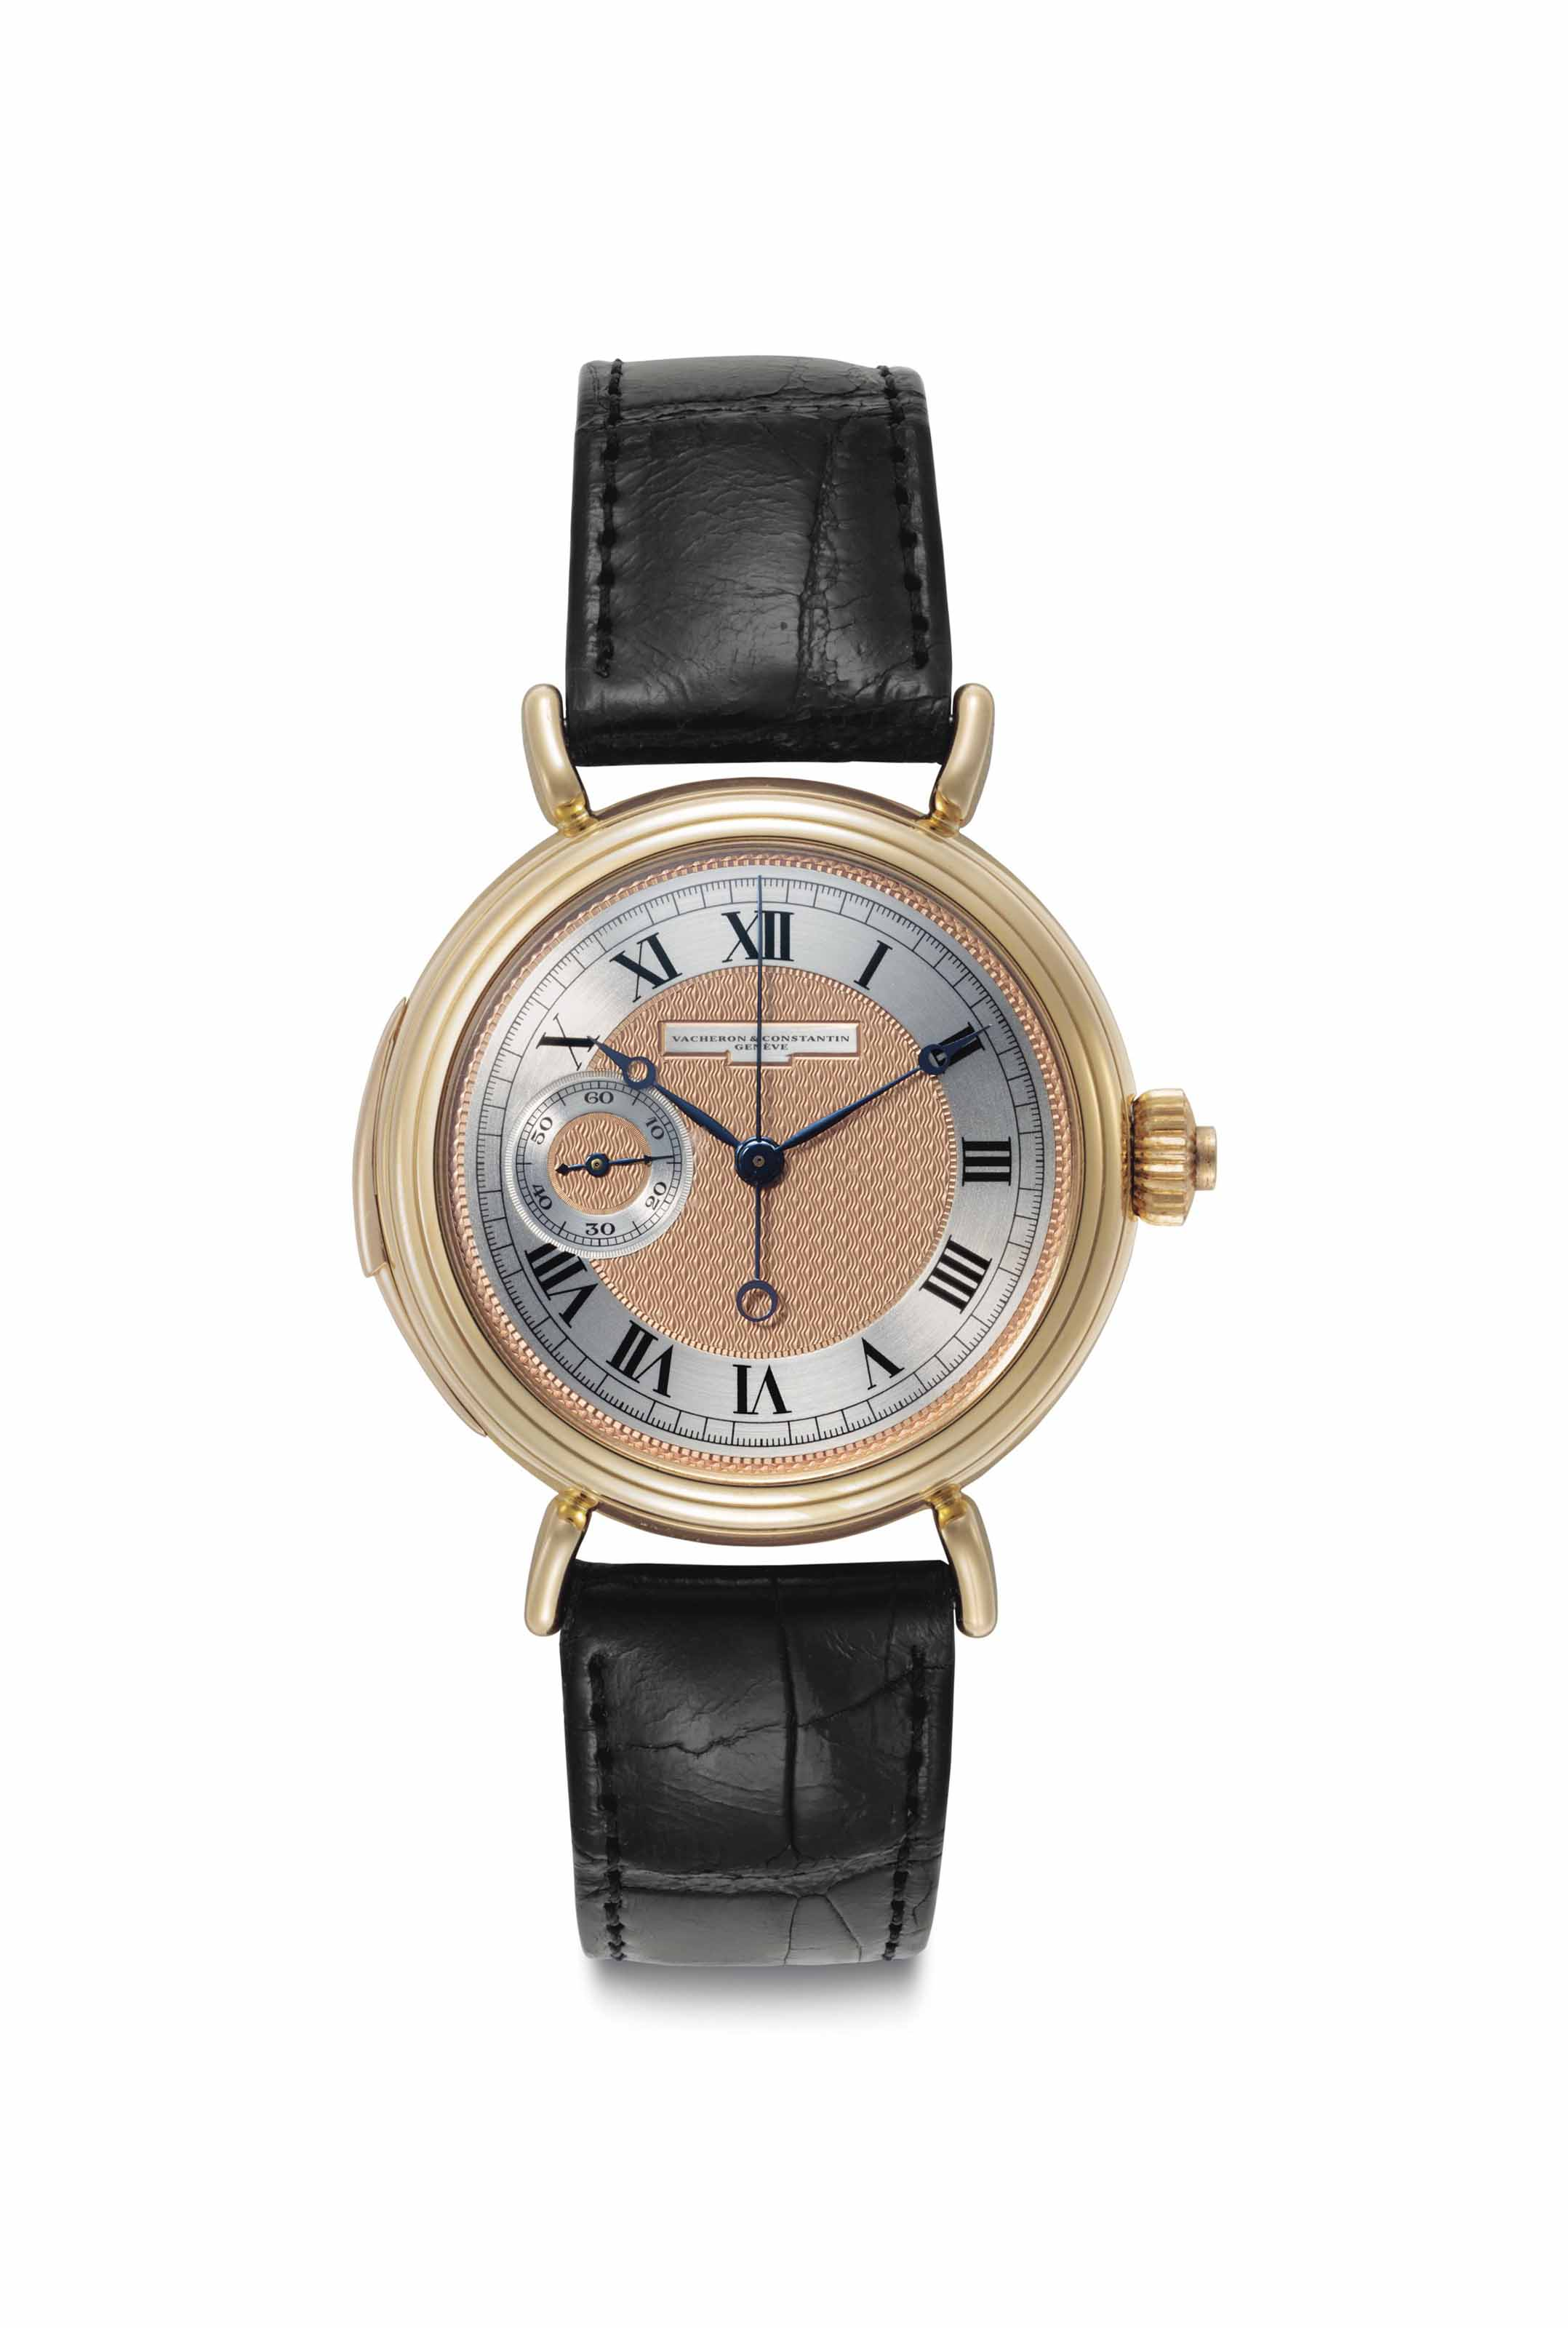 Vacheron Constantin. An Extremely Fine and Rare 18k Gold Five Minute Repeating Wristwatch with Single Button Chronograph